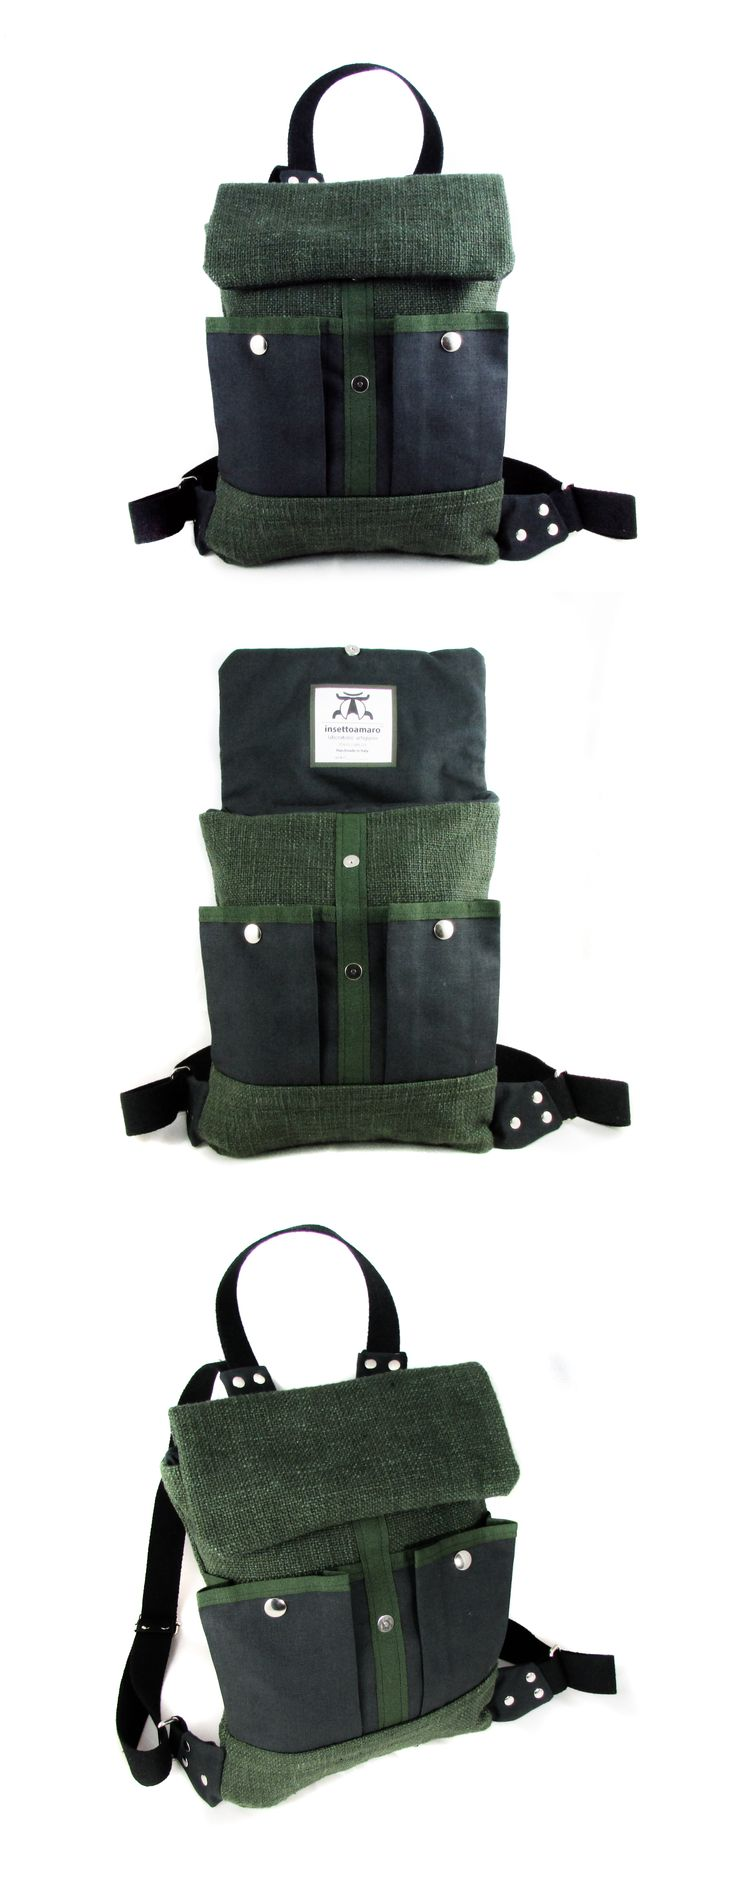 #insettoamaro Winter|Fell #backpack DarkOliveGreen twill with GraphiteGray canvas